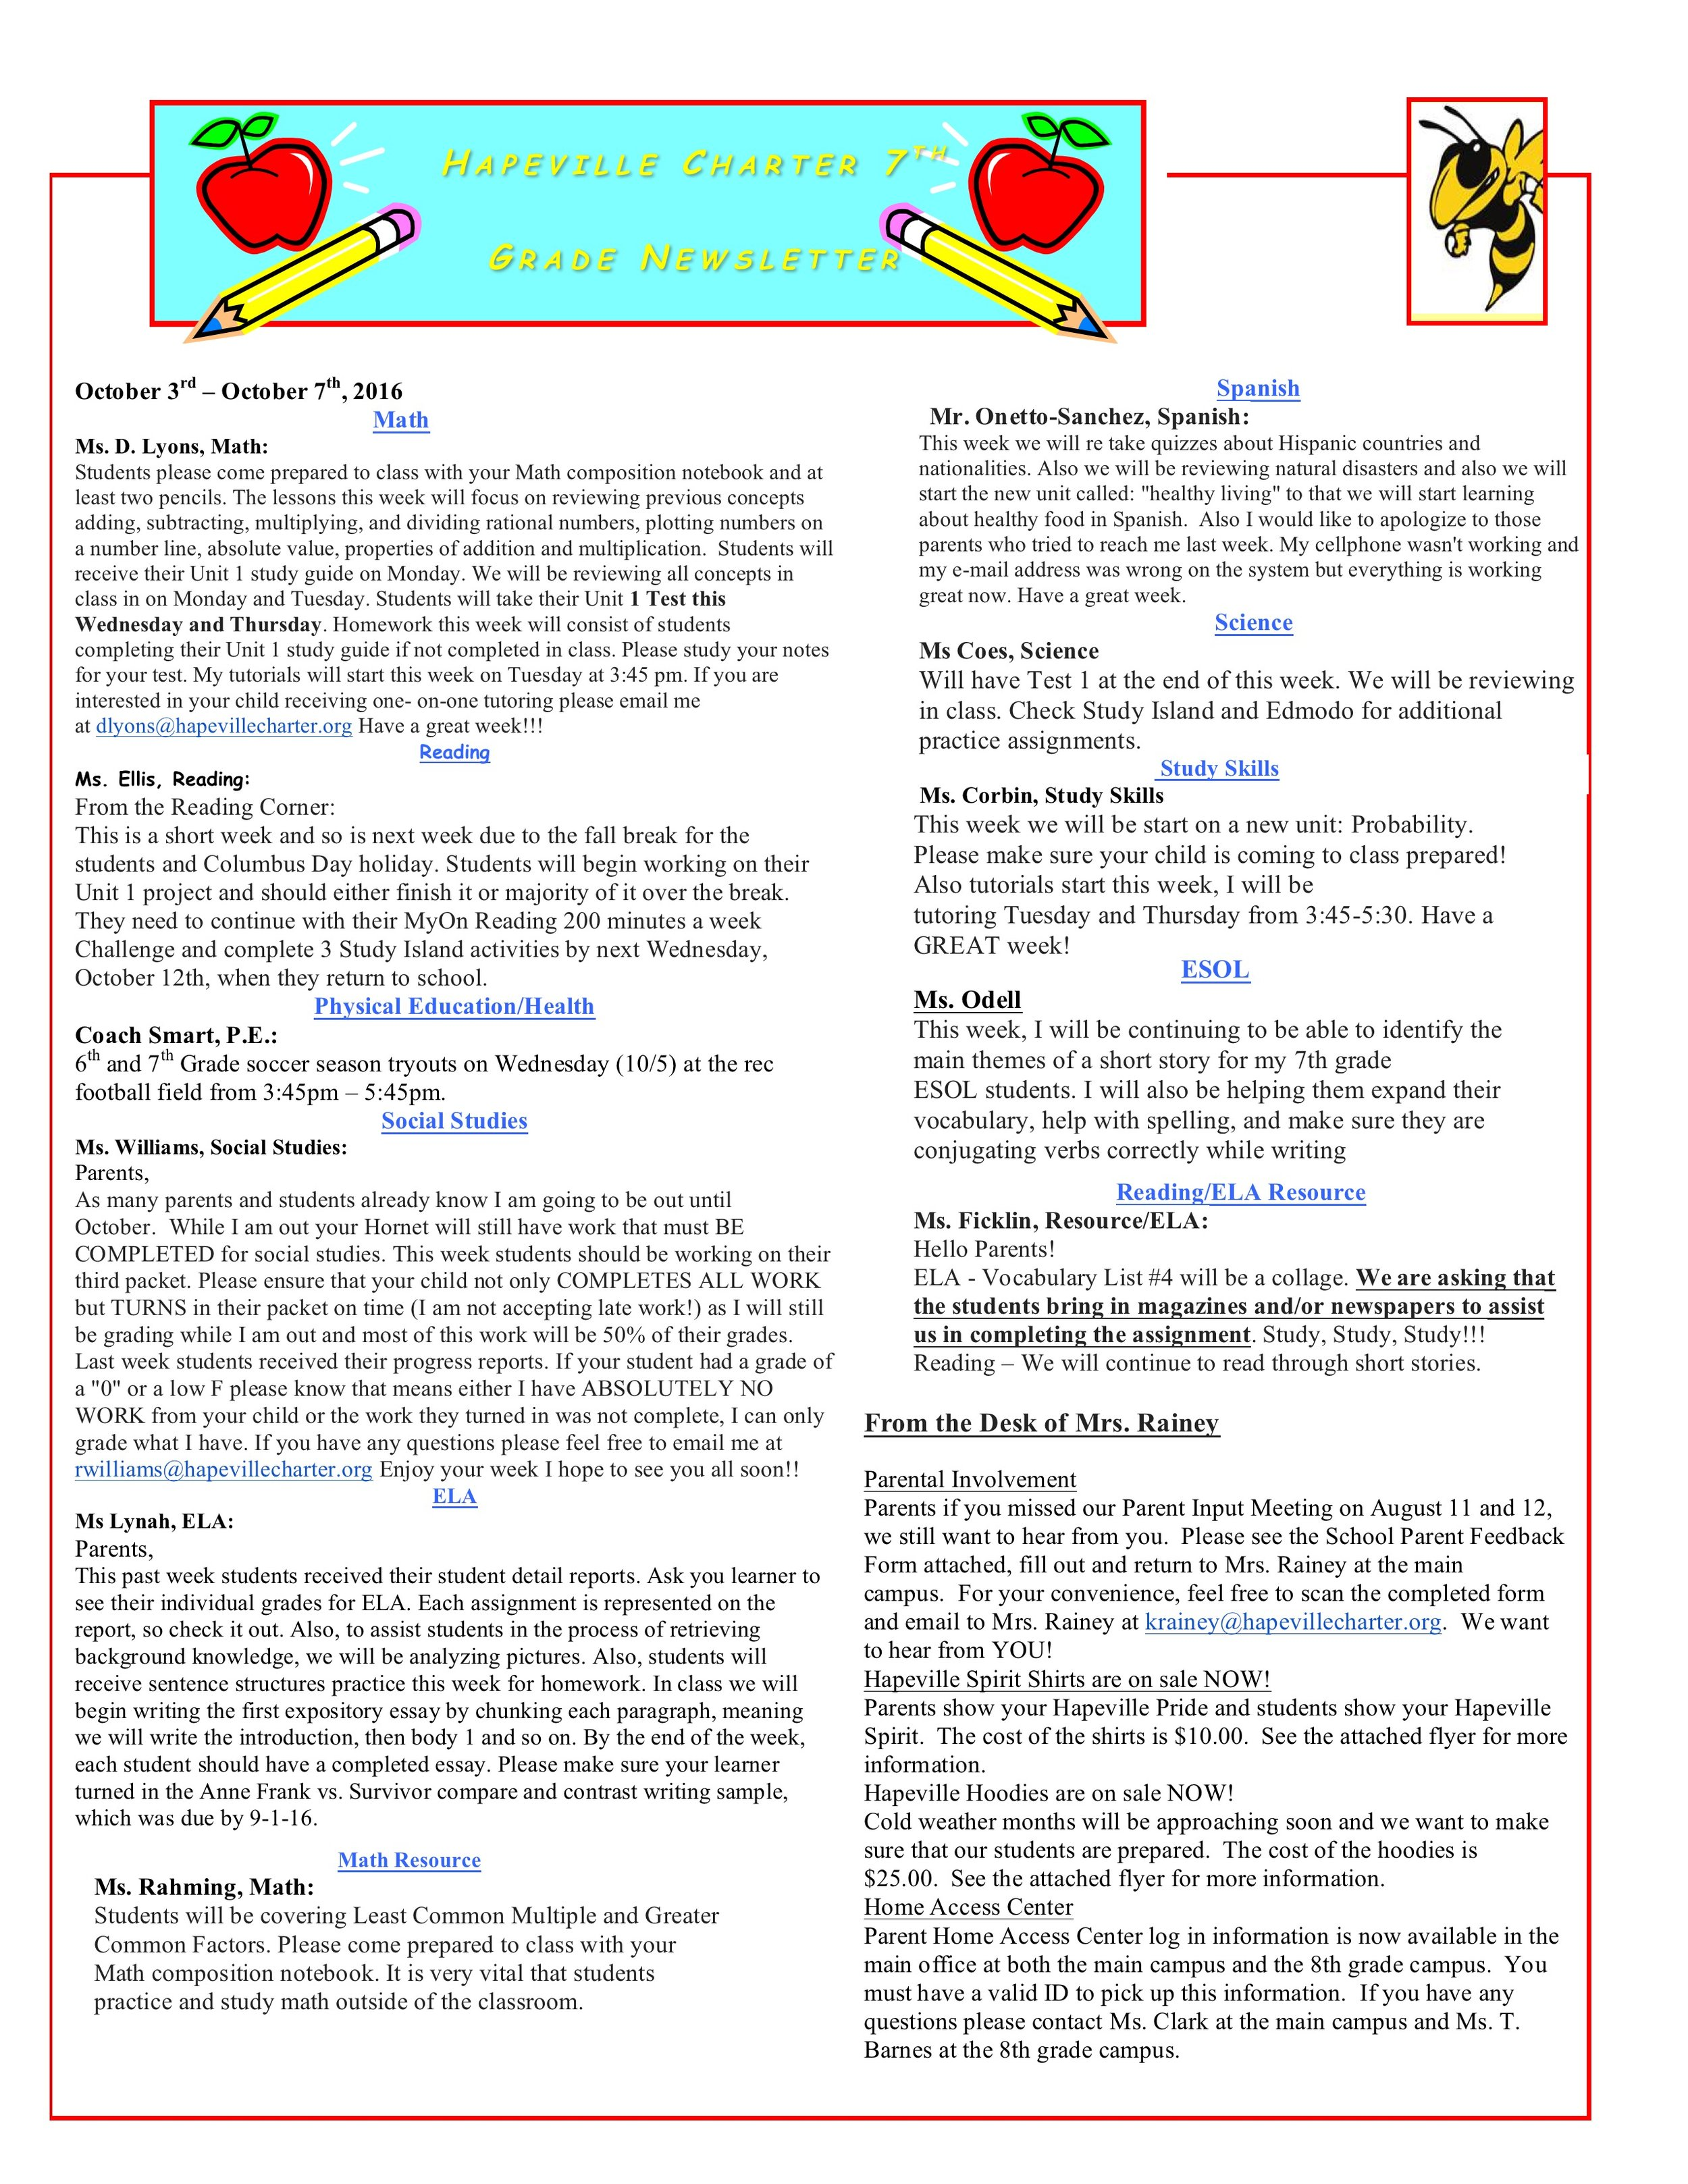 Newsletter Image7th Grade Newsletter 10.3.2016 .jpeg